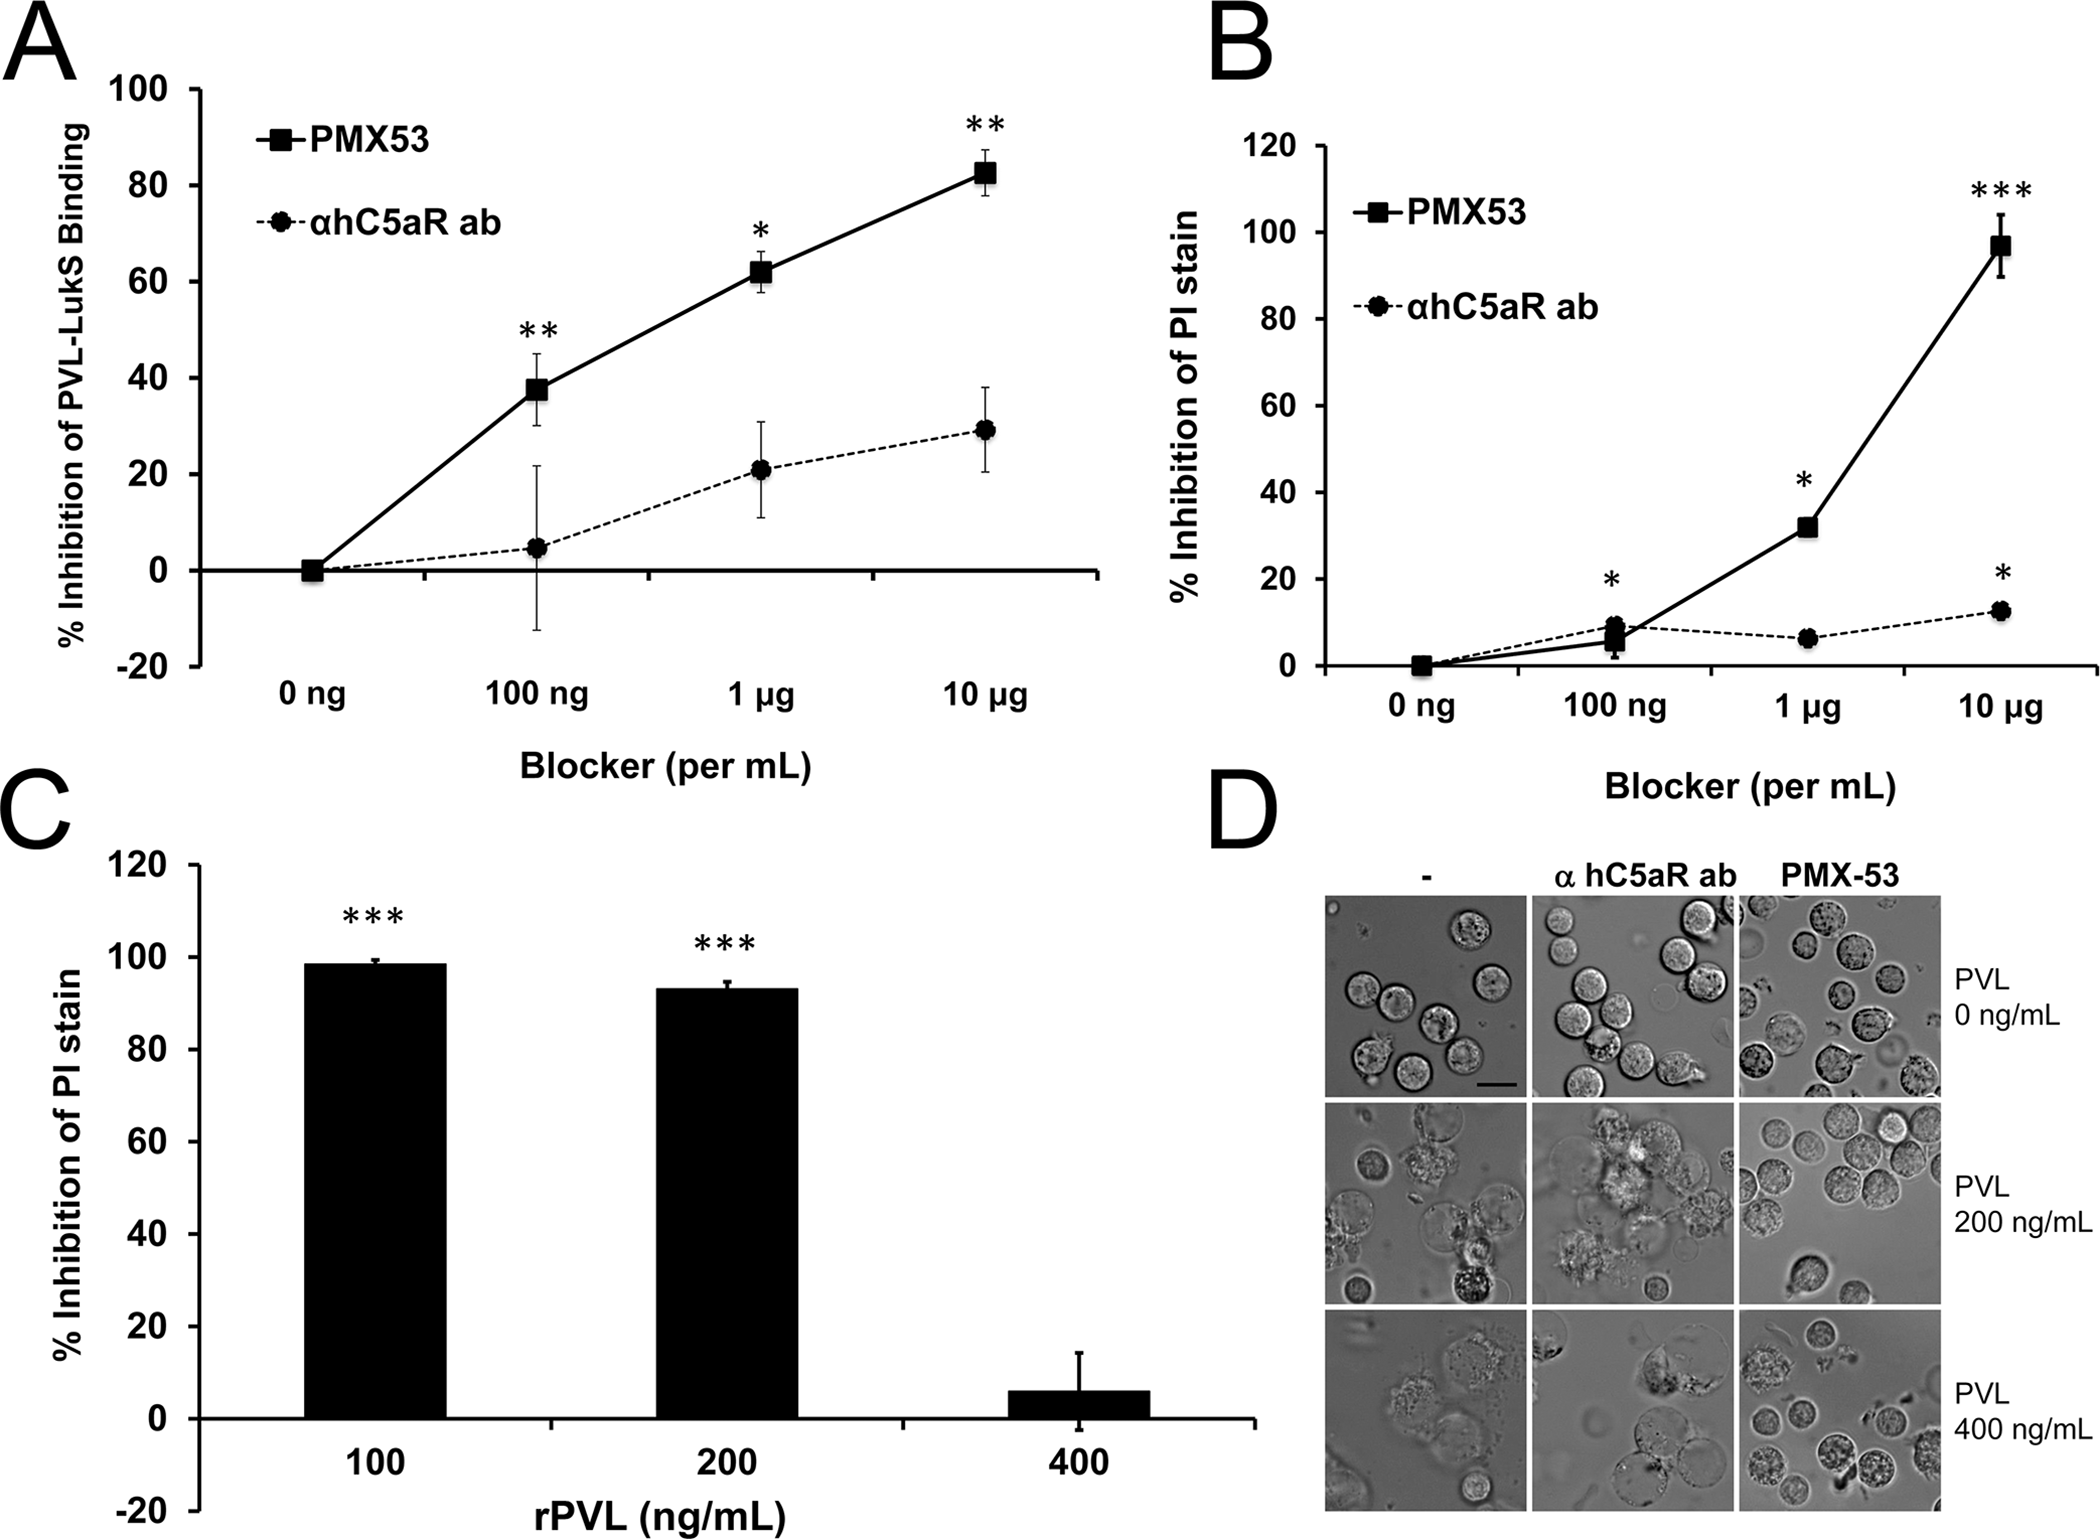 PMX53 inhibits PVL-mediated pore formation and cytotoxicity <i>in vitro</i>.